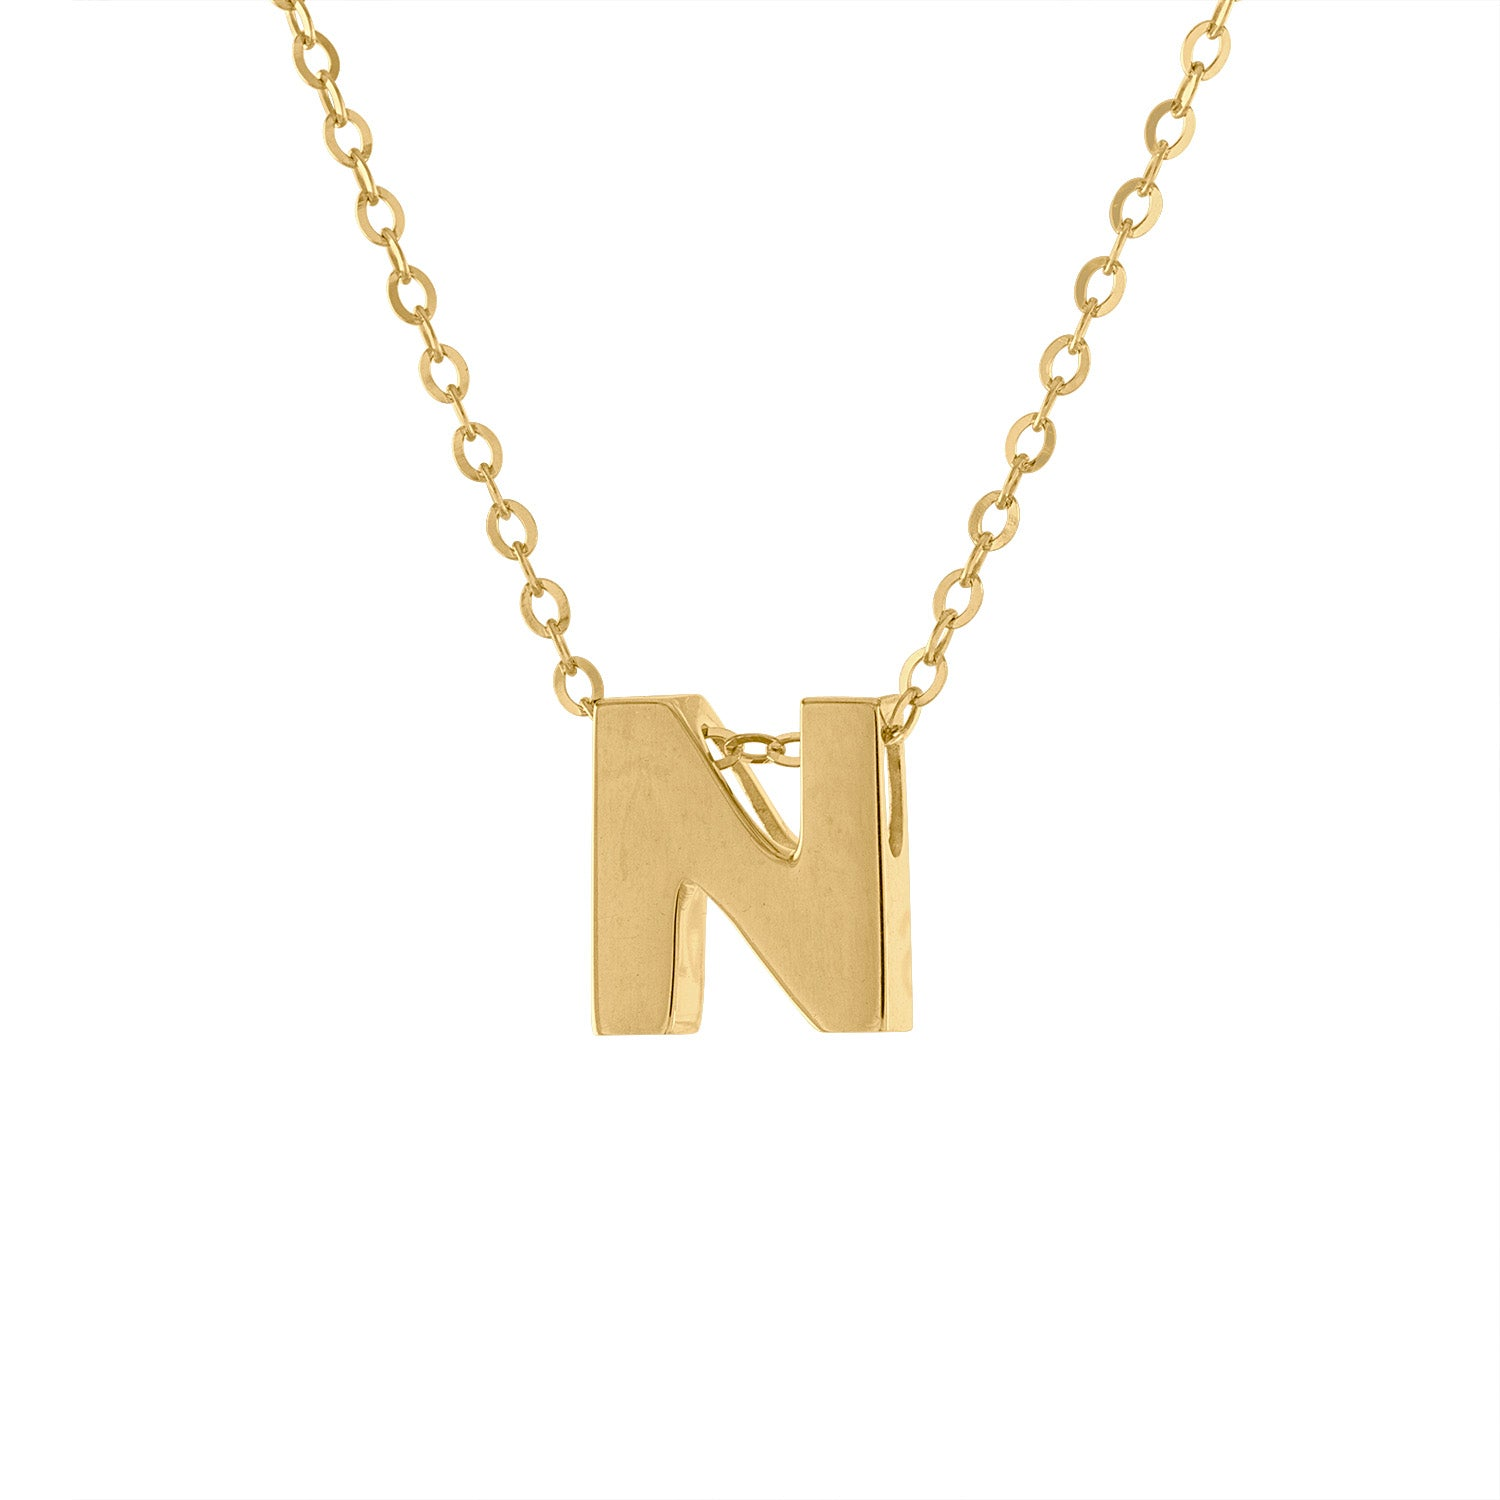 14k Yellow Gold plain initial N necklace